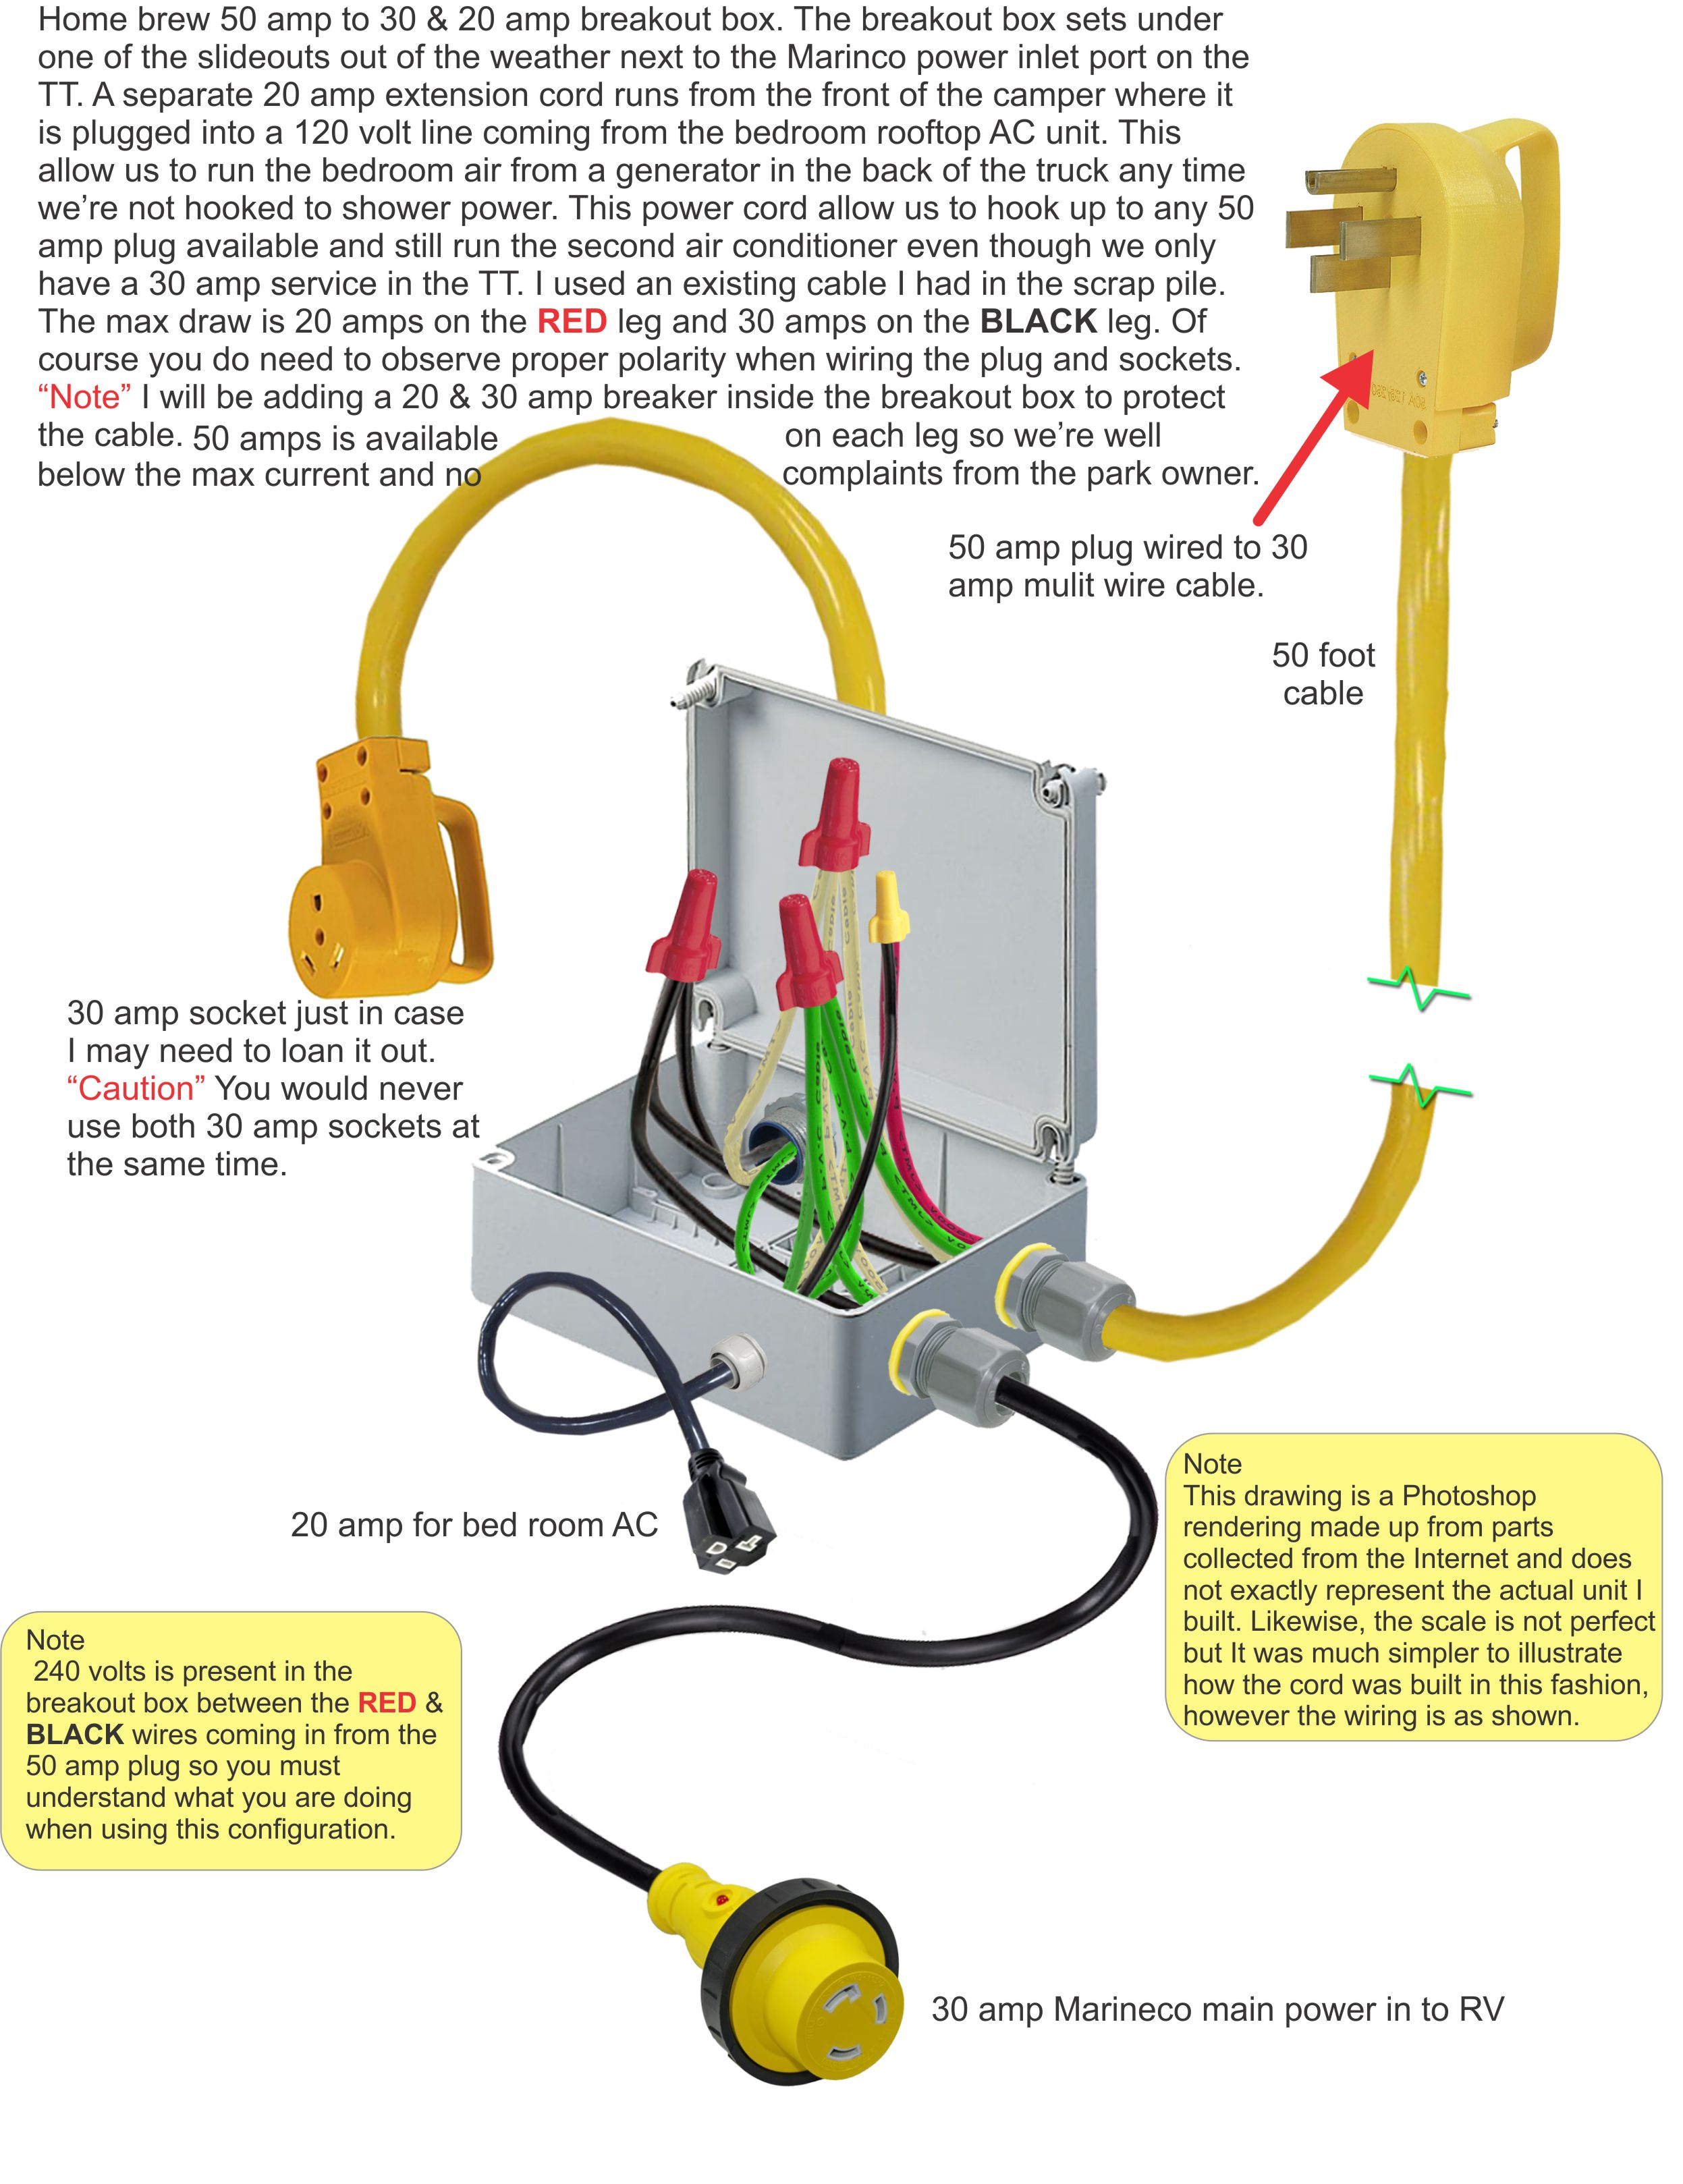 Rv 30 Amp Plug Wiring Diagram | Wiring Diagram - 30 Amp Rv Plug Wiring Diagram